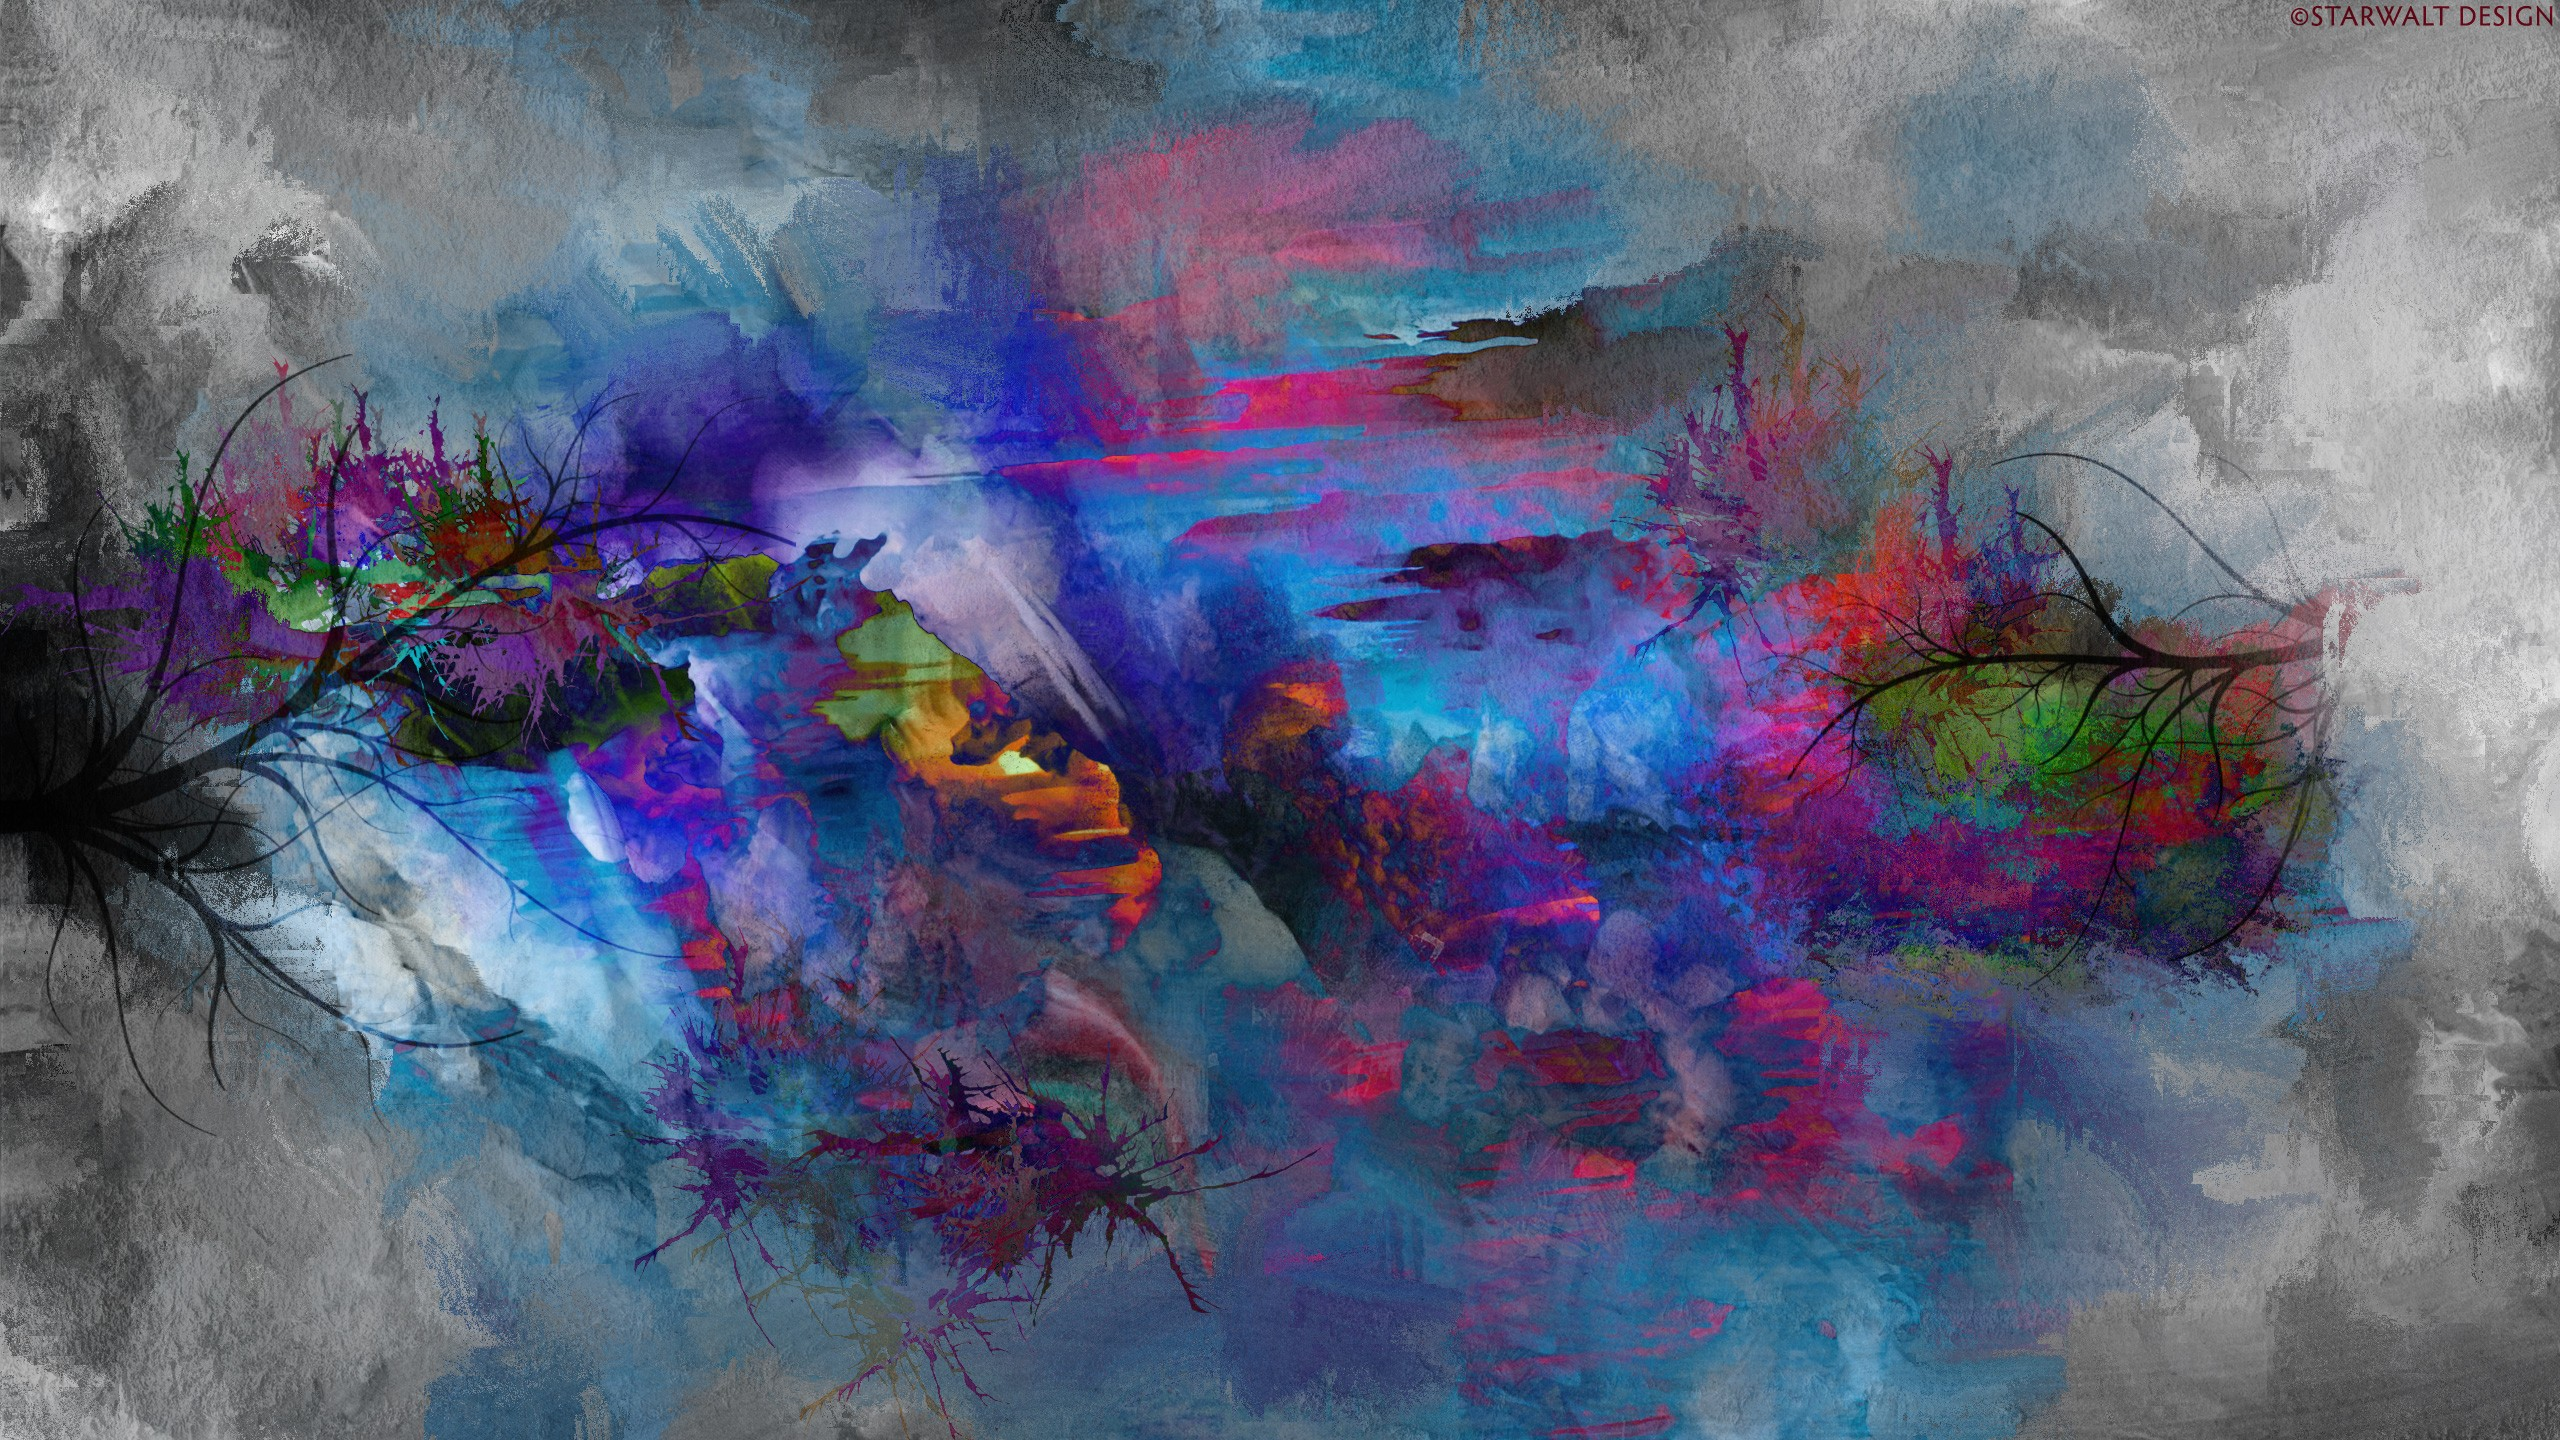 Abstract nature painting wallpapers 43554 2560x jpg 272128 2560x1440